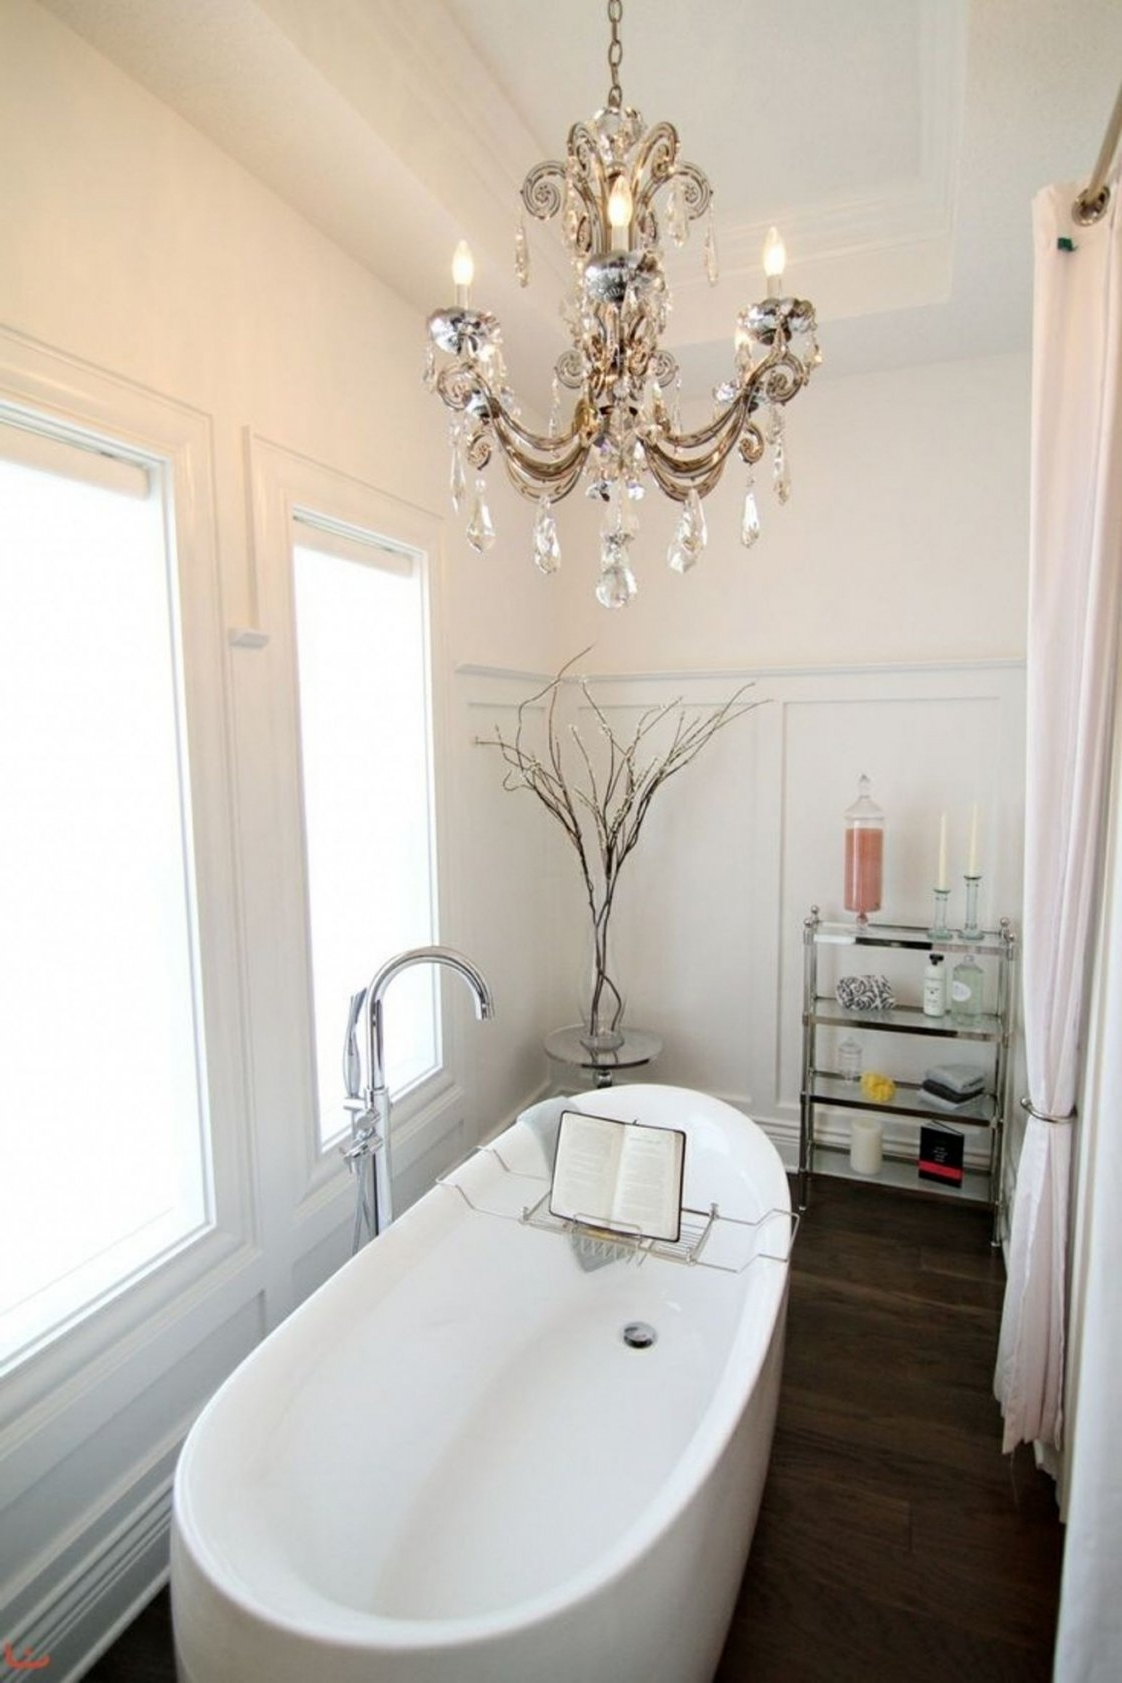 Fashionable Chandelier Bathroom Lighting – Aneilve (View 9 of 20)